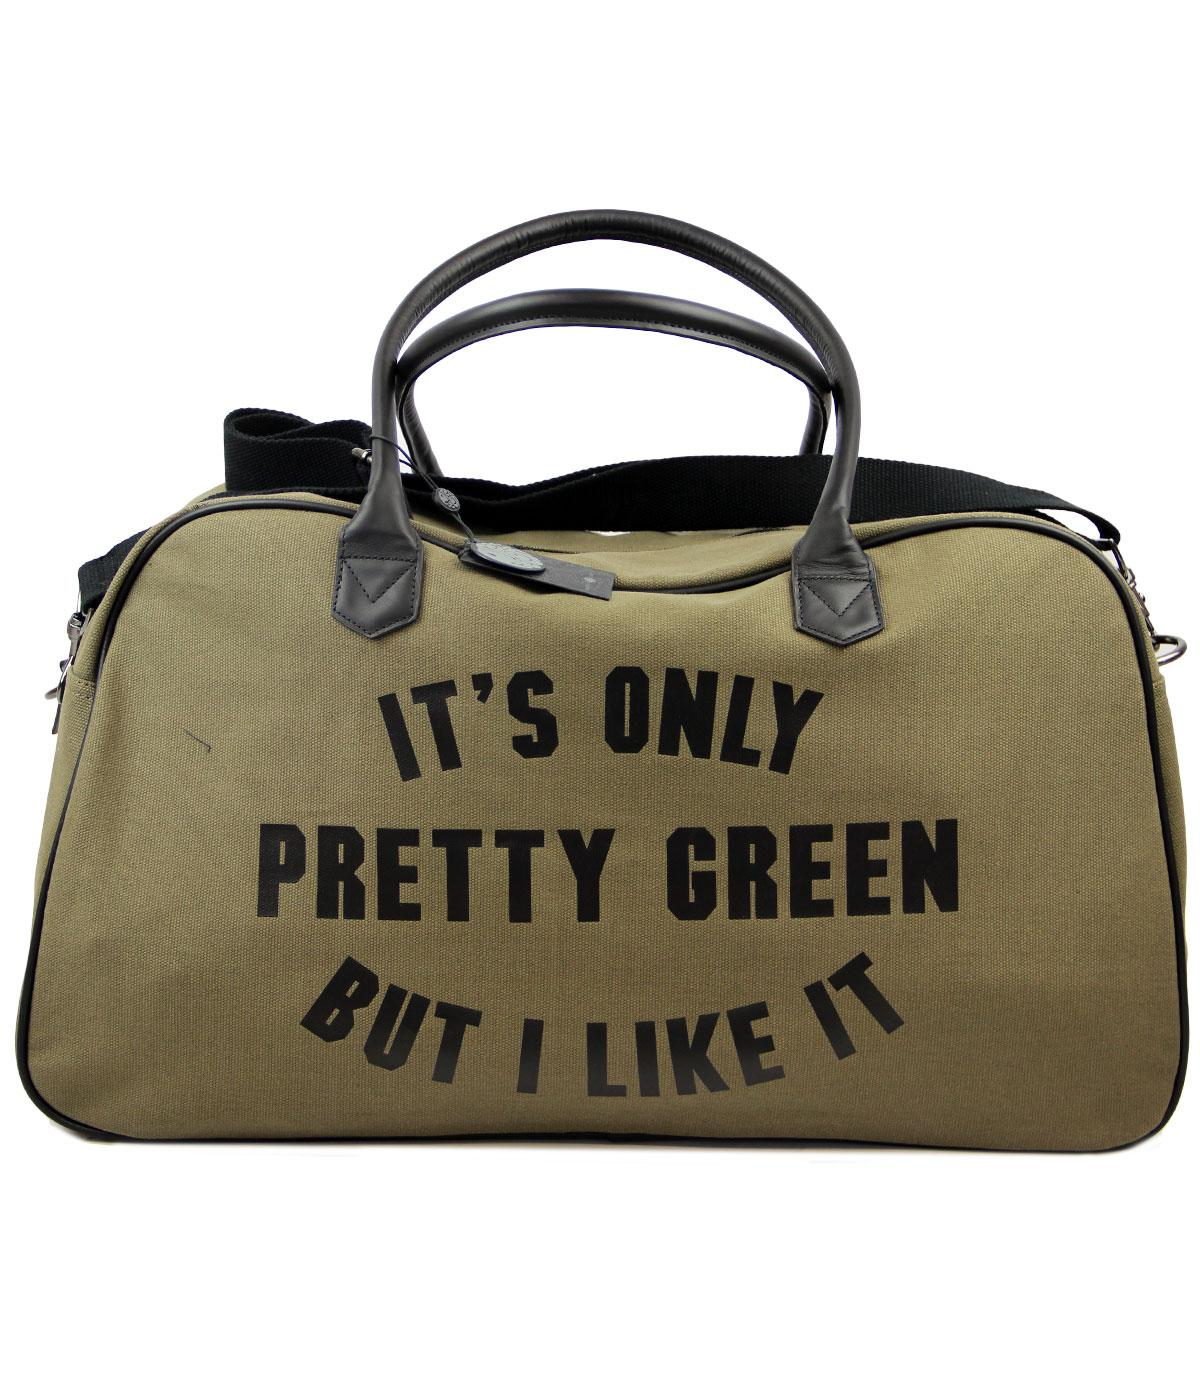 PRETTY GREEN Retro Indie Mod Its Only Pretty Green Weekender Bag